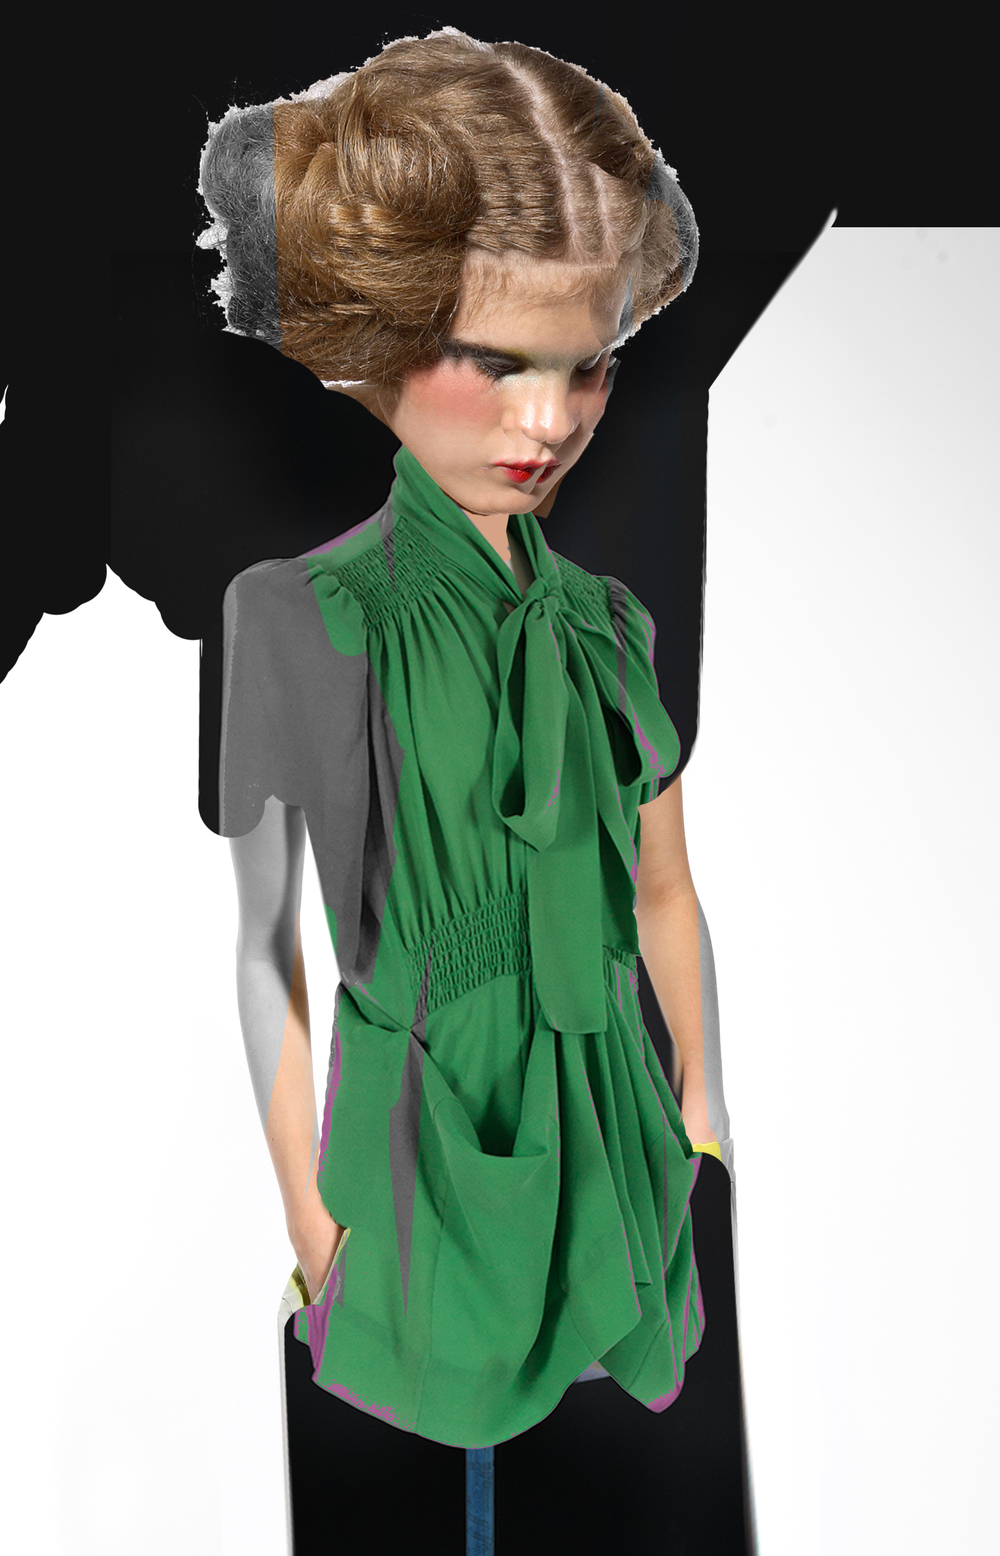 DRESS label INTO COLOUR SS16 collection: PAINTBOX DOLL wears02 BRIGHT GREEN/ Short Sleeve, Adaptor Blouse/Knee length Dress